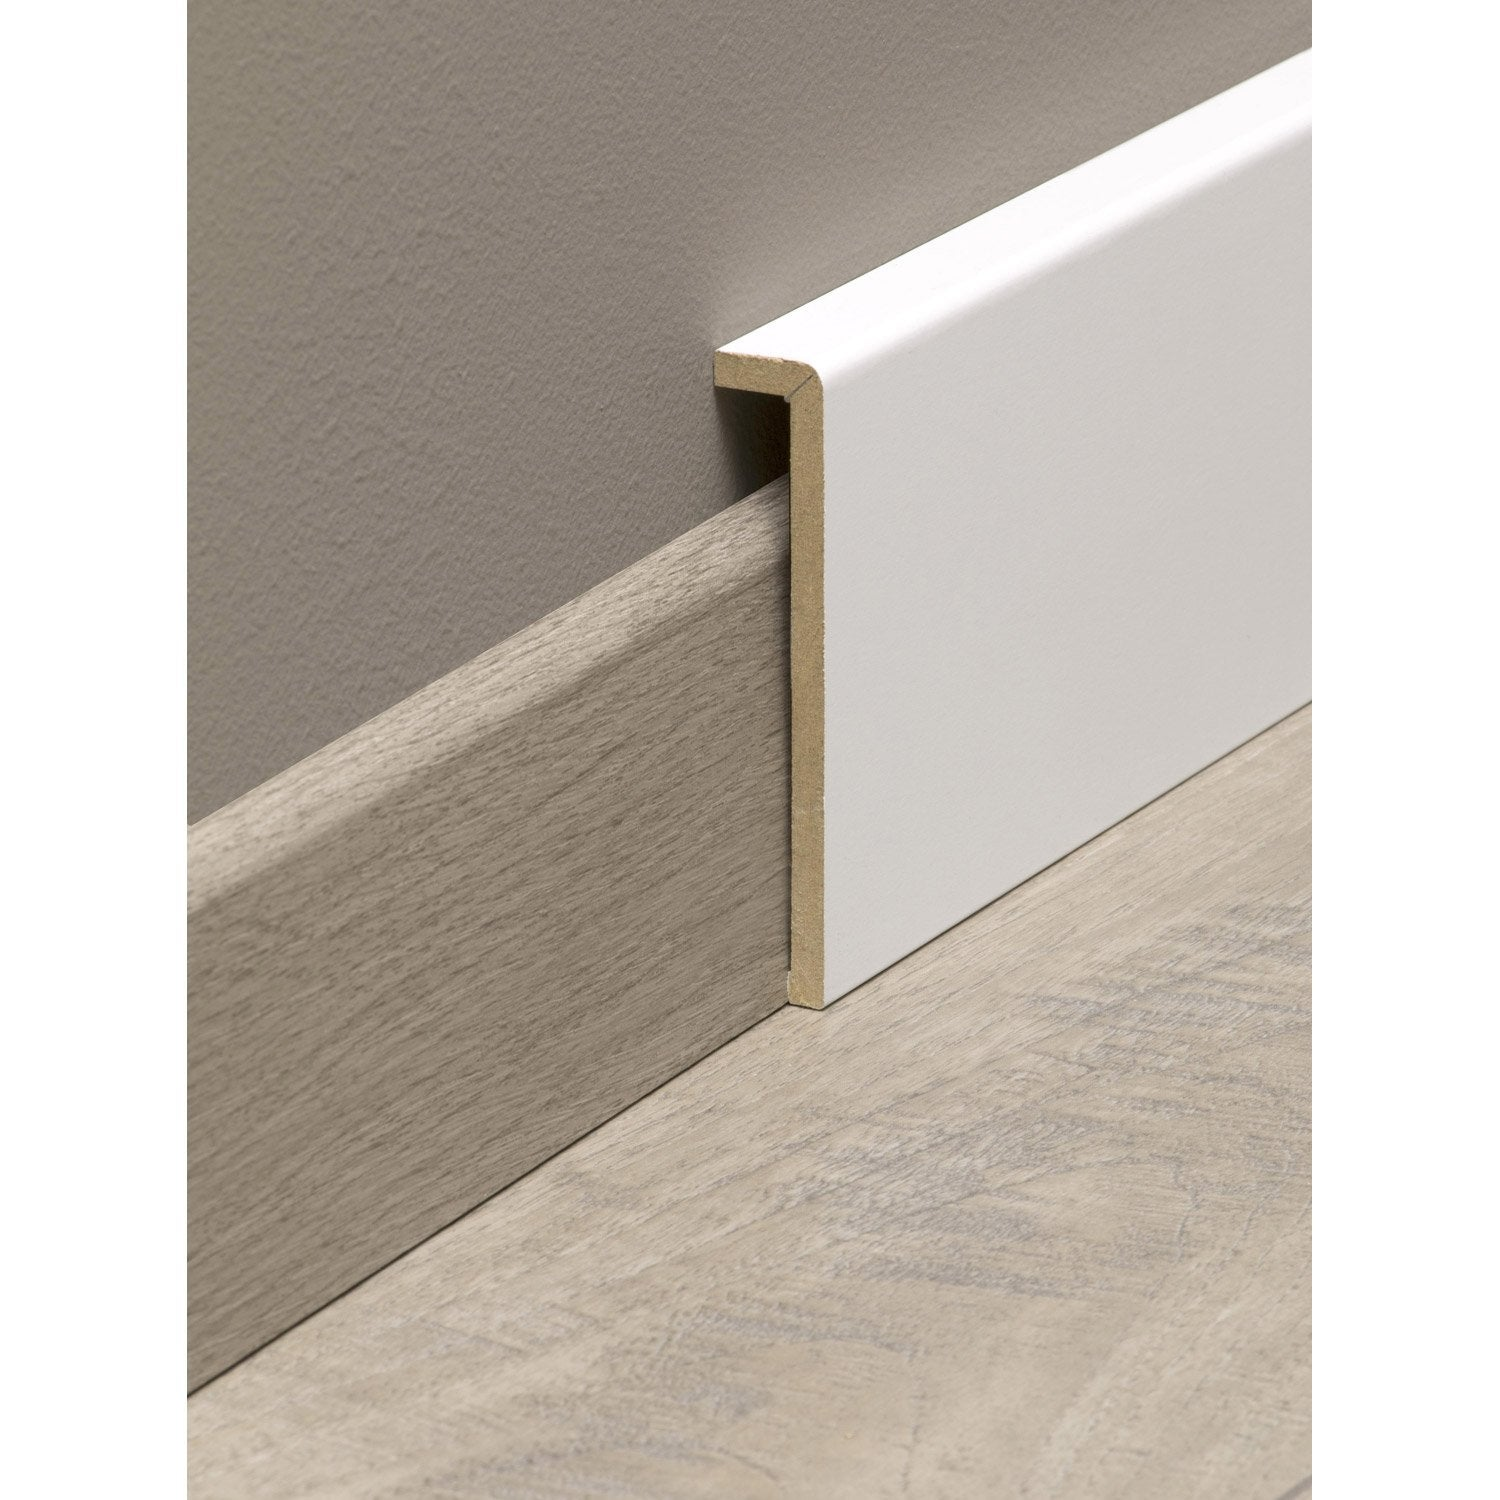 Surplinthe de r novation m dium mdf m lamin blanc 19 x for Poser des plinthes en carrelage